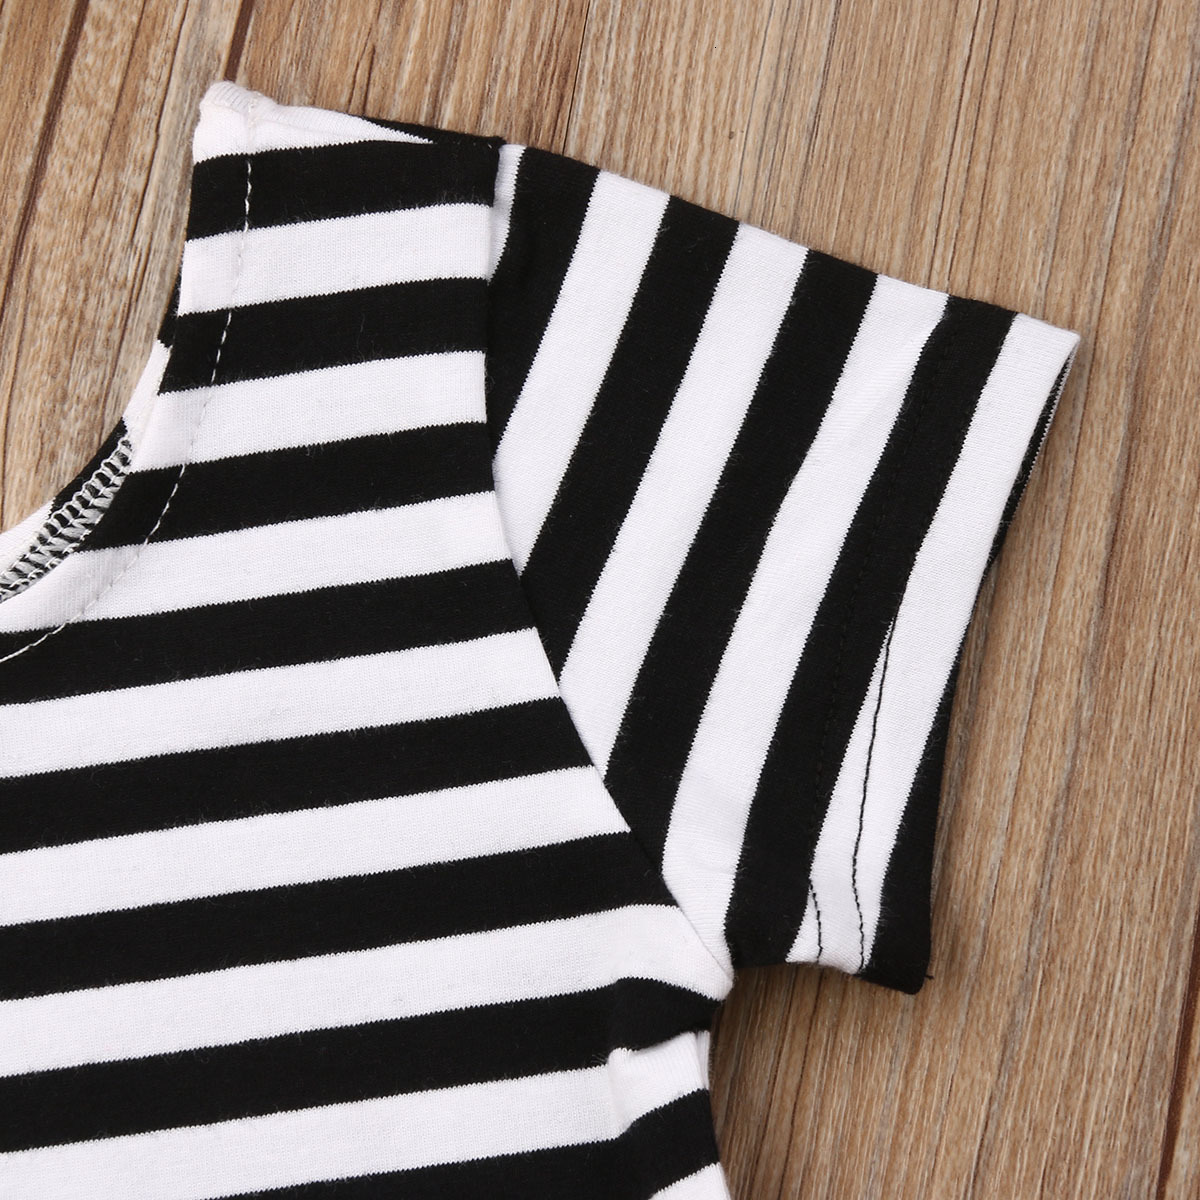 2019 Fashionable Toddler Kids Baby Girls Clothes Set Summer Kid Outfit Striped T-shirt Wide Leg Pants Children Clothing Set